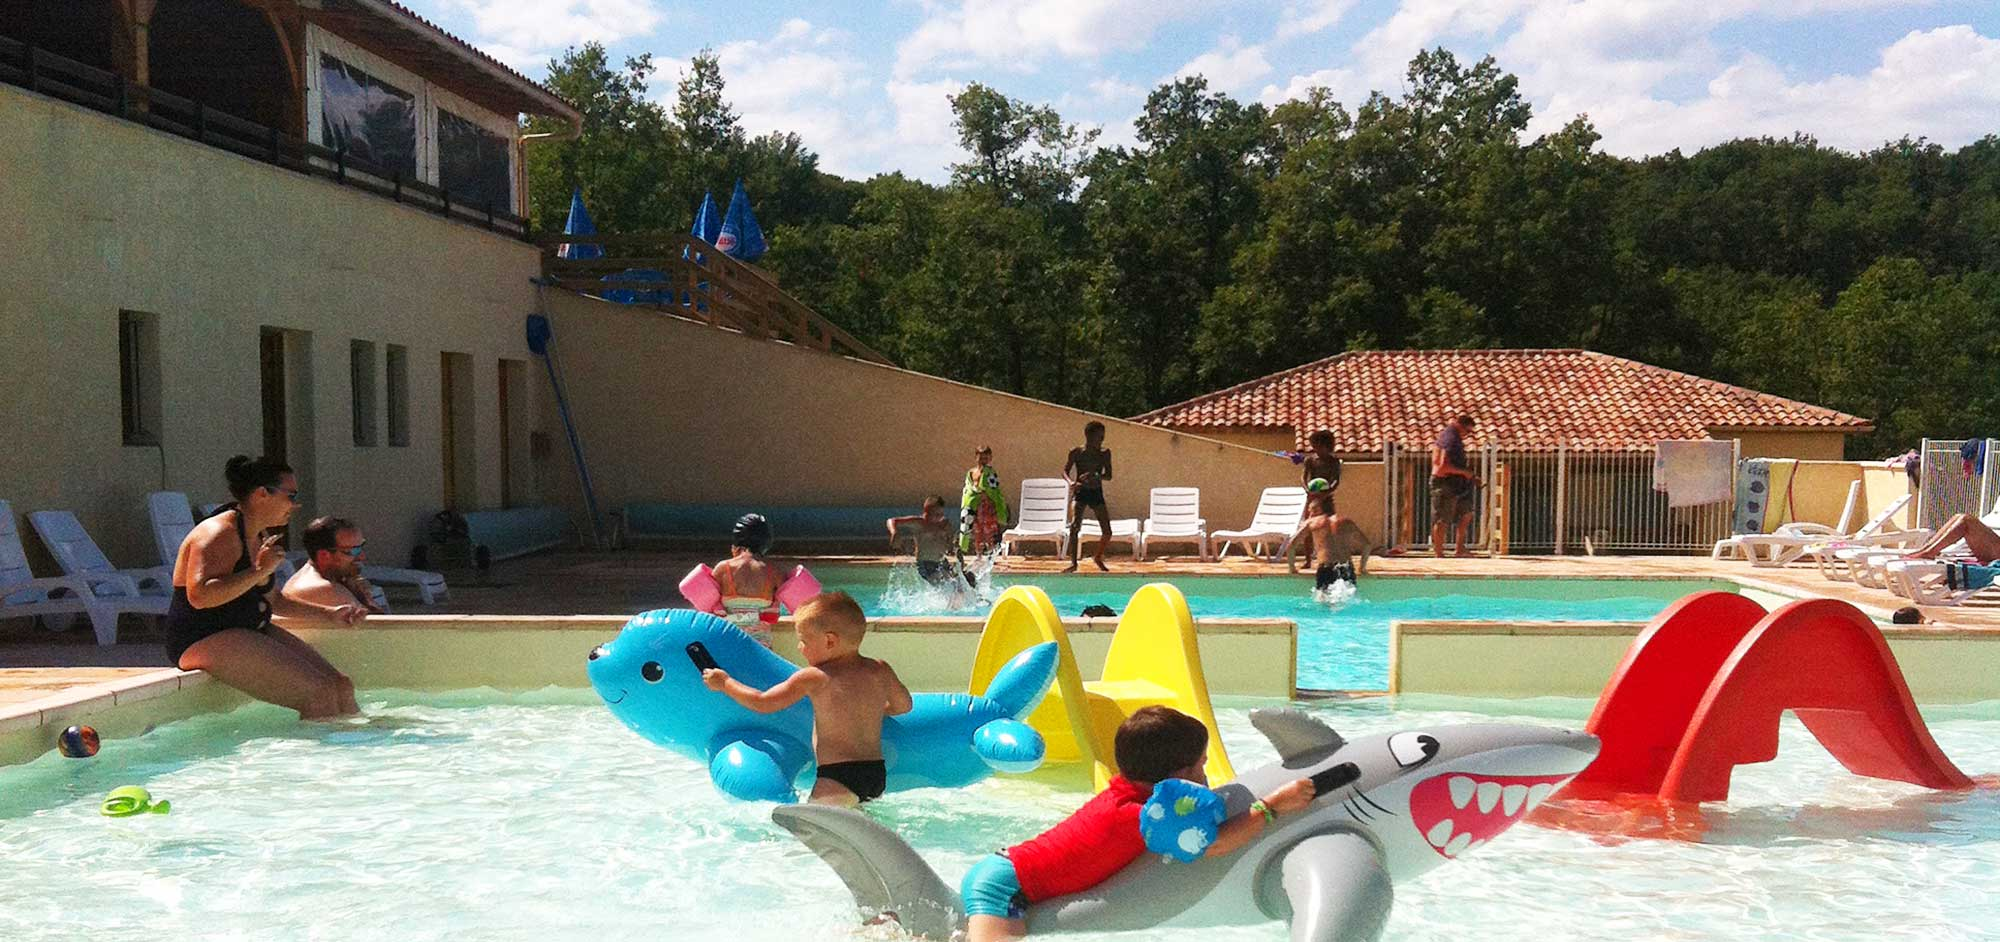 Camping rocamadour lot piscine camping 3 lot for Camping avec piscine lot